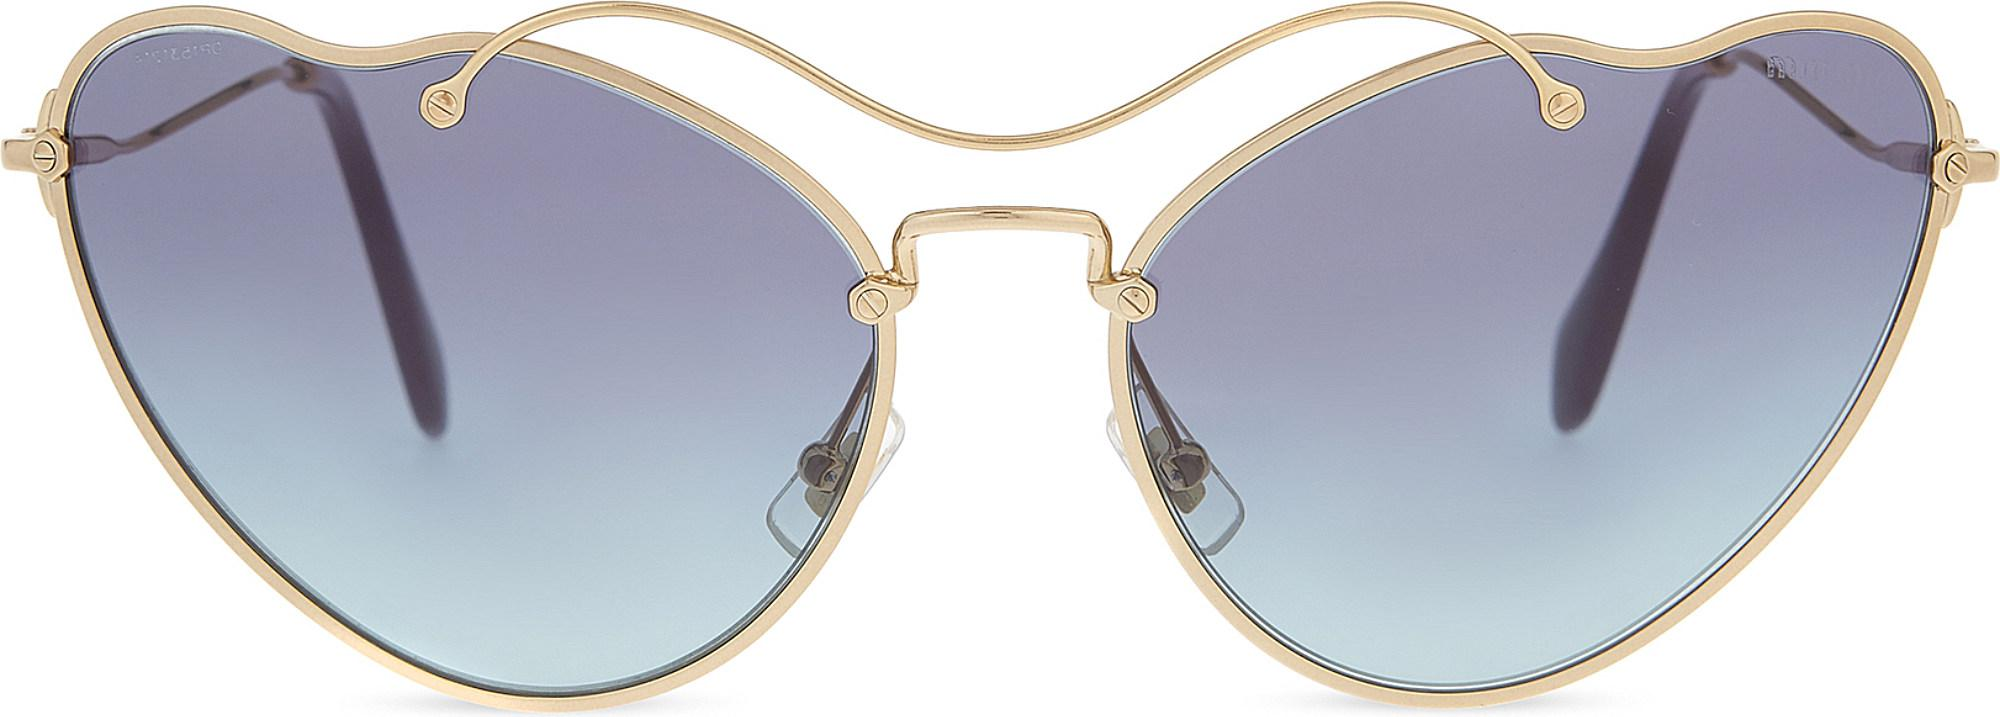 7bf32dff68 Lyst - Miu Miu Mu55rs Scenique Cat Eye-frame Sunglasses in Metallic